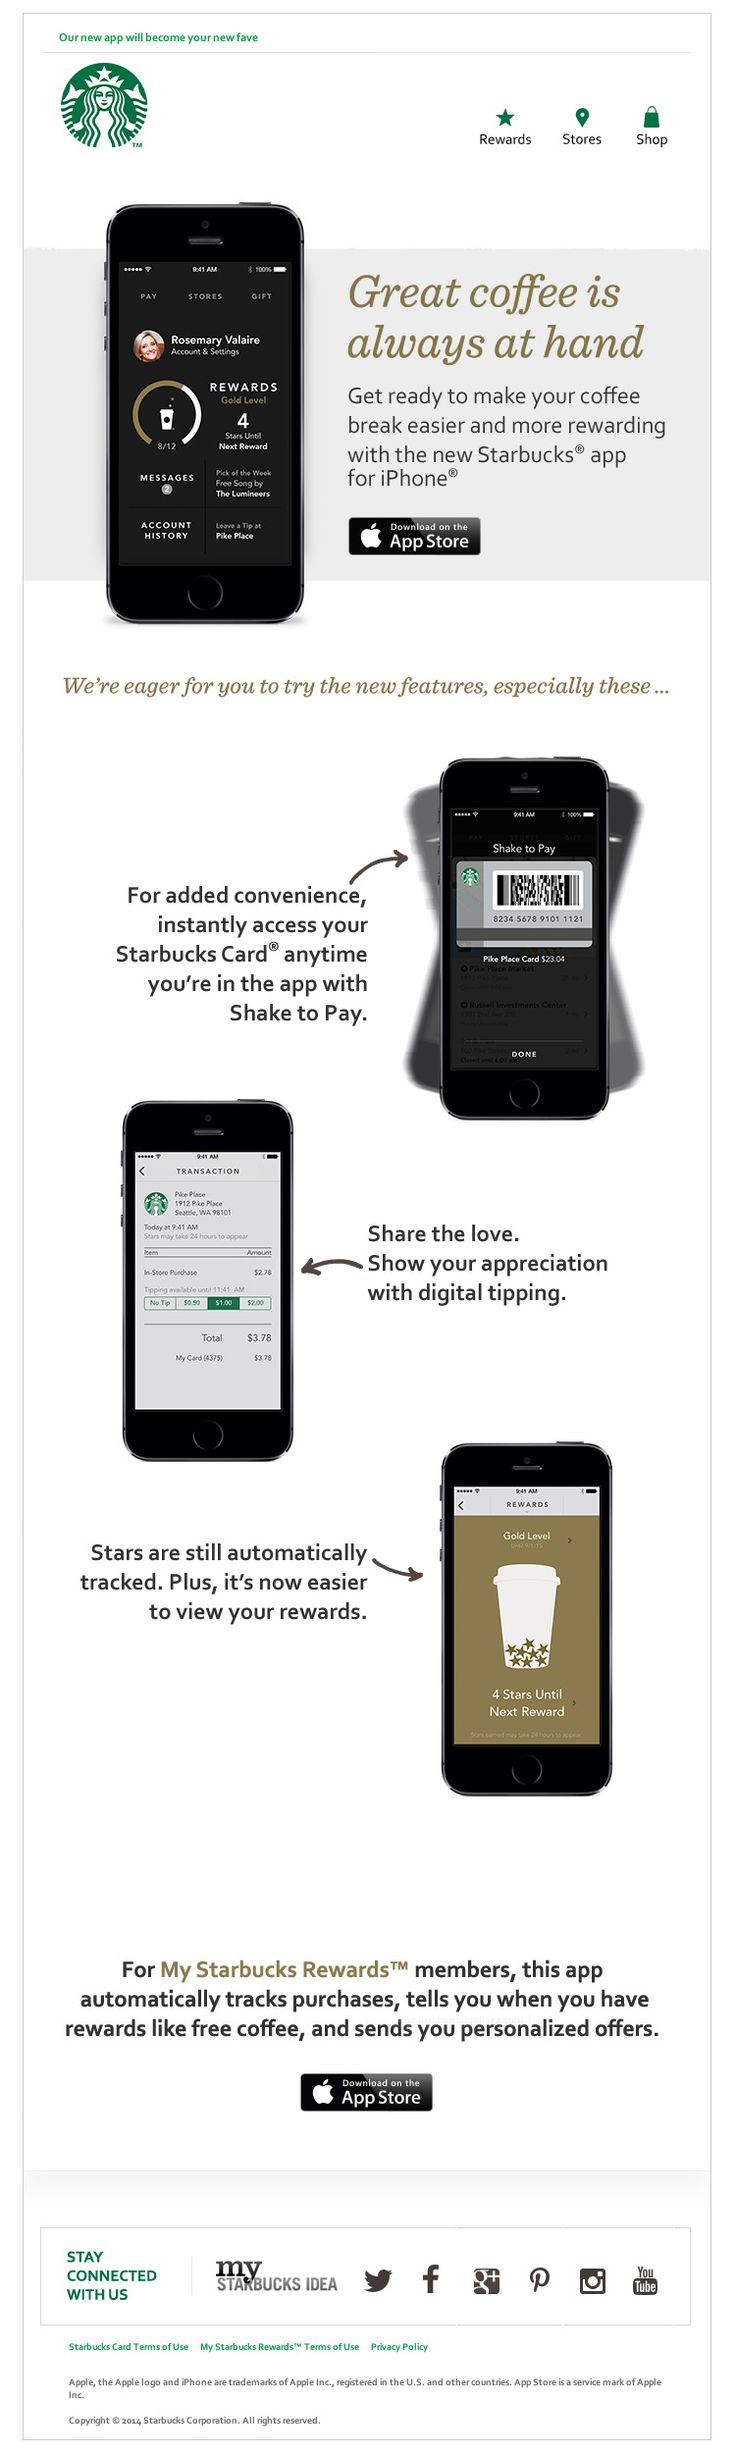 The starbucks improved mobile app email shows off their new and improved mobile app in a clear and concise way that s easy to scroll see the full email